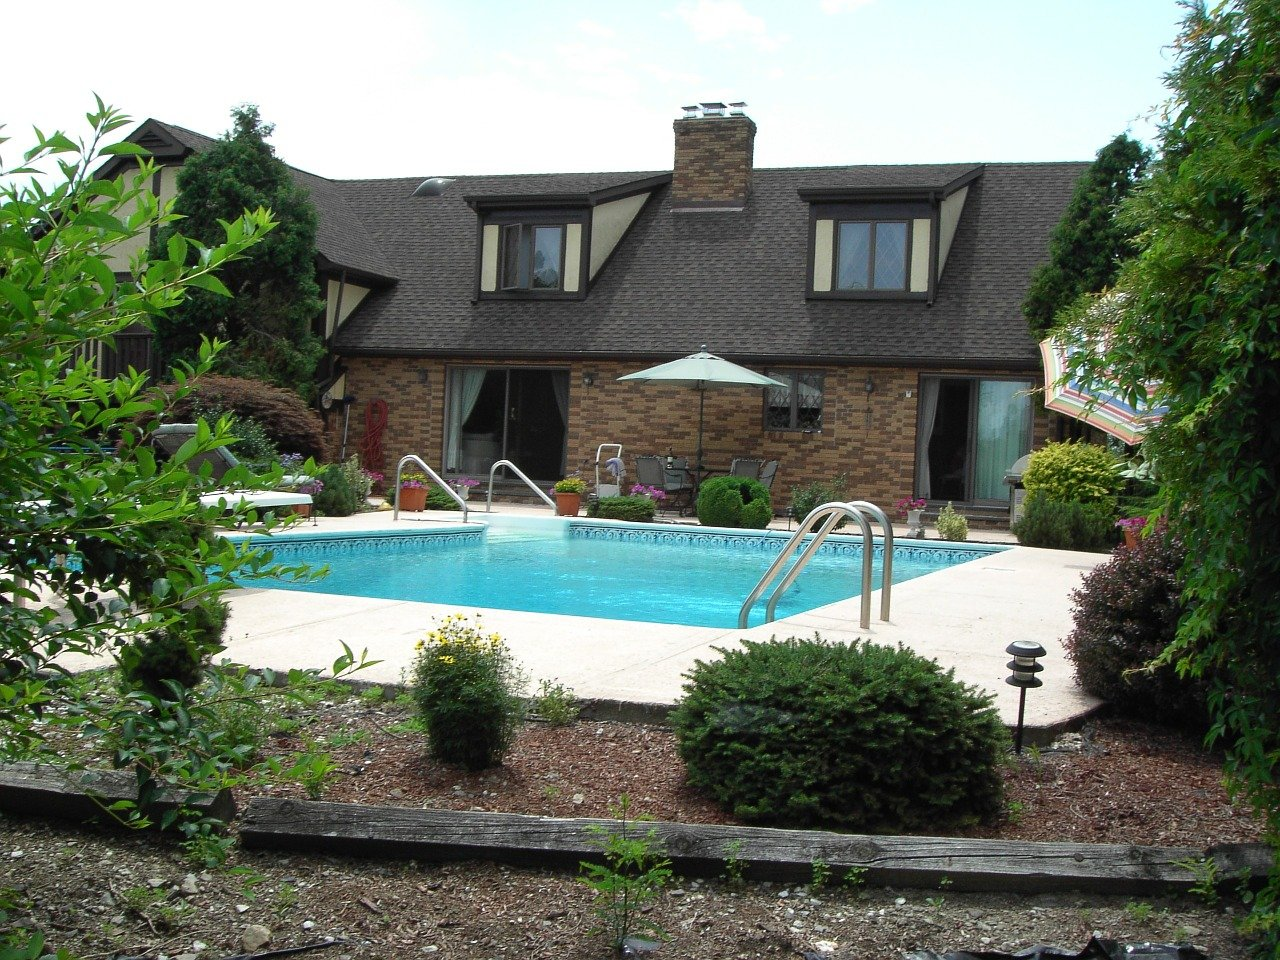 Homes For Sale With Pool In Lebanon Tn